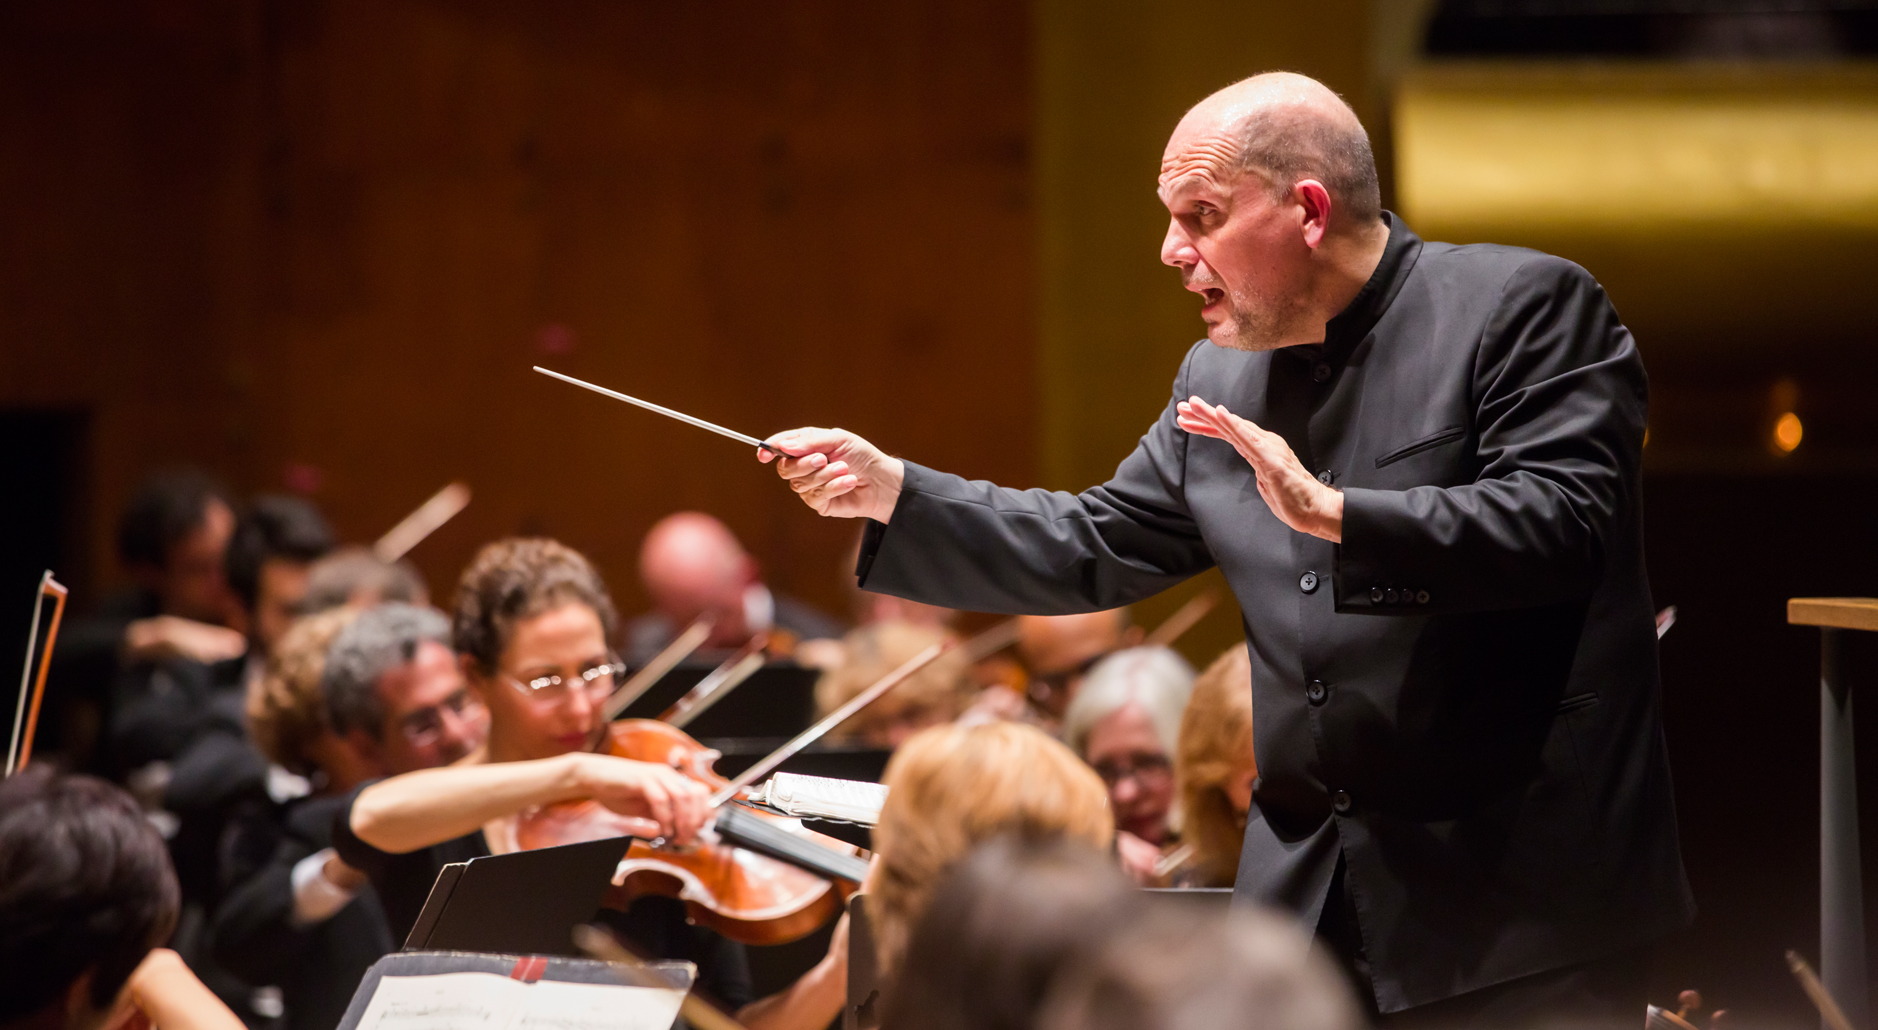 jaap van zweden named next music director of new york philharmonic